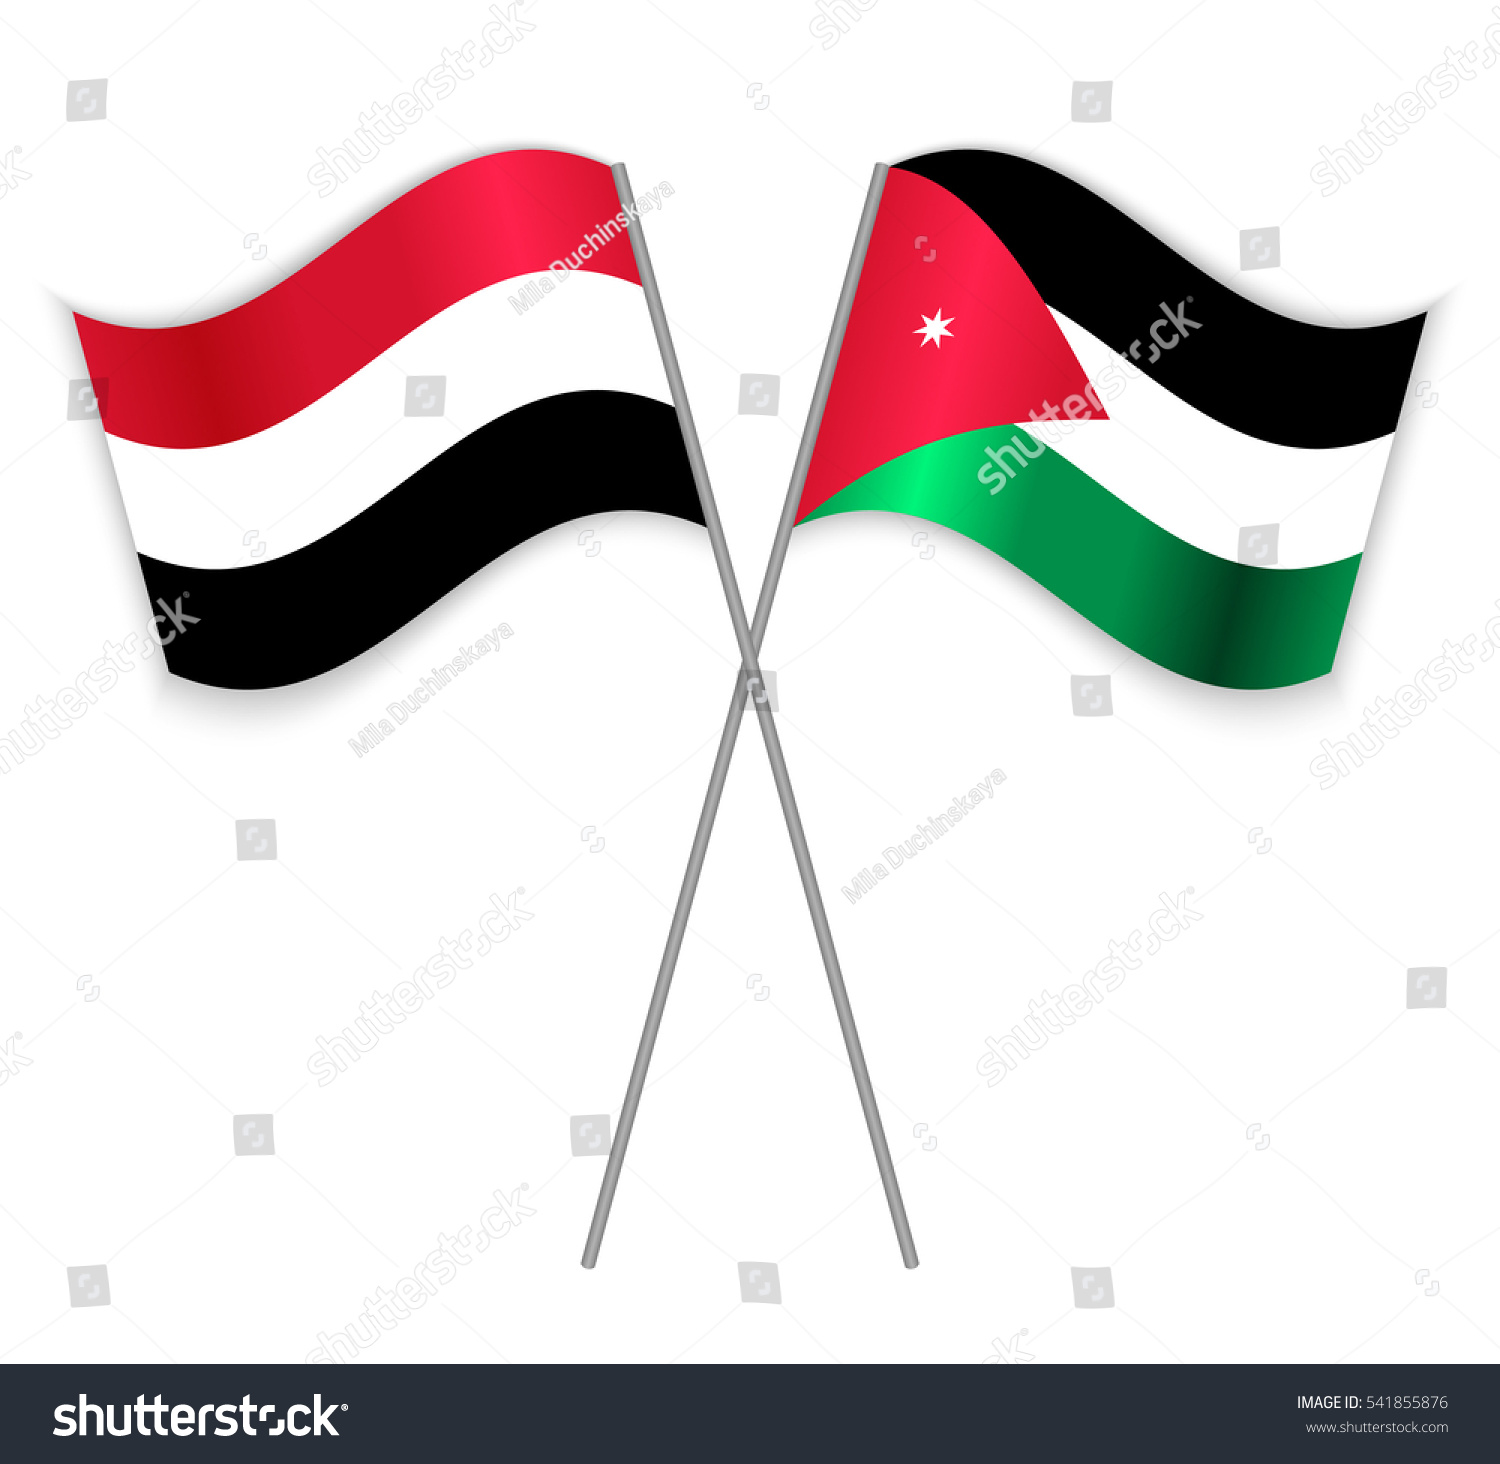 Yemeni Jordanian Crossed Flags Yemen Combined Stock Vector (Royalty on map of argentina, map of finland, map of japan, map of philippines, map of iraq, map of iran, map of austria, map of united arab emirates, map of saudi arabia, map of new caledonia, map of new zealand, map of honduras, map of indonesia, map of afghanistan, map of asia with yemen, map of yemen cities, map of yemen and surrounding countries, map of nigeria, map of pakistan,